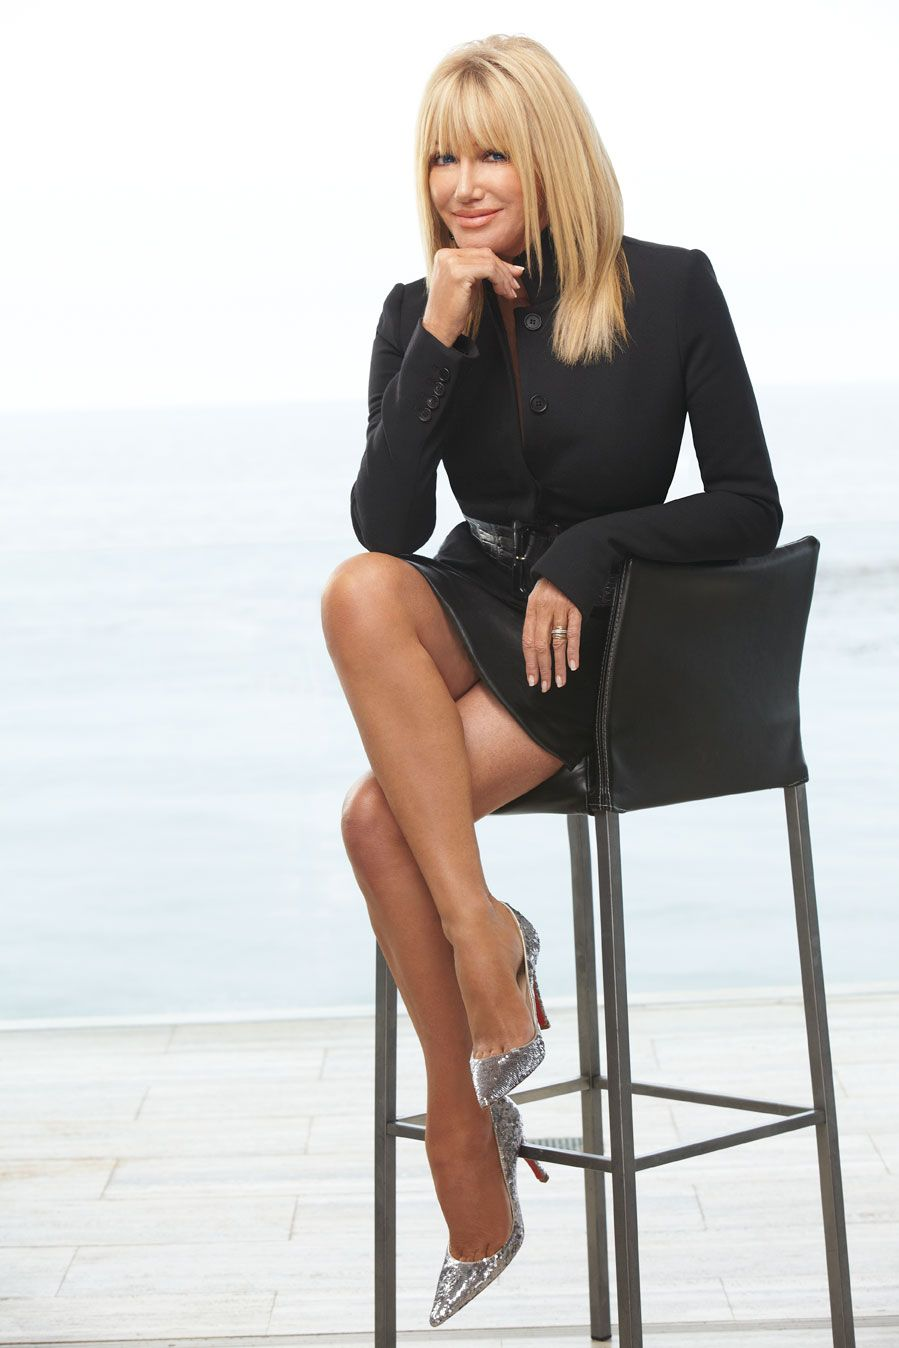 bf5d972e6bb Suzanne Somers